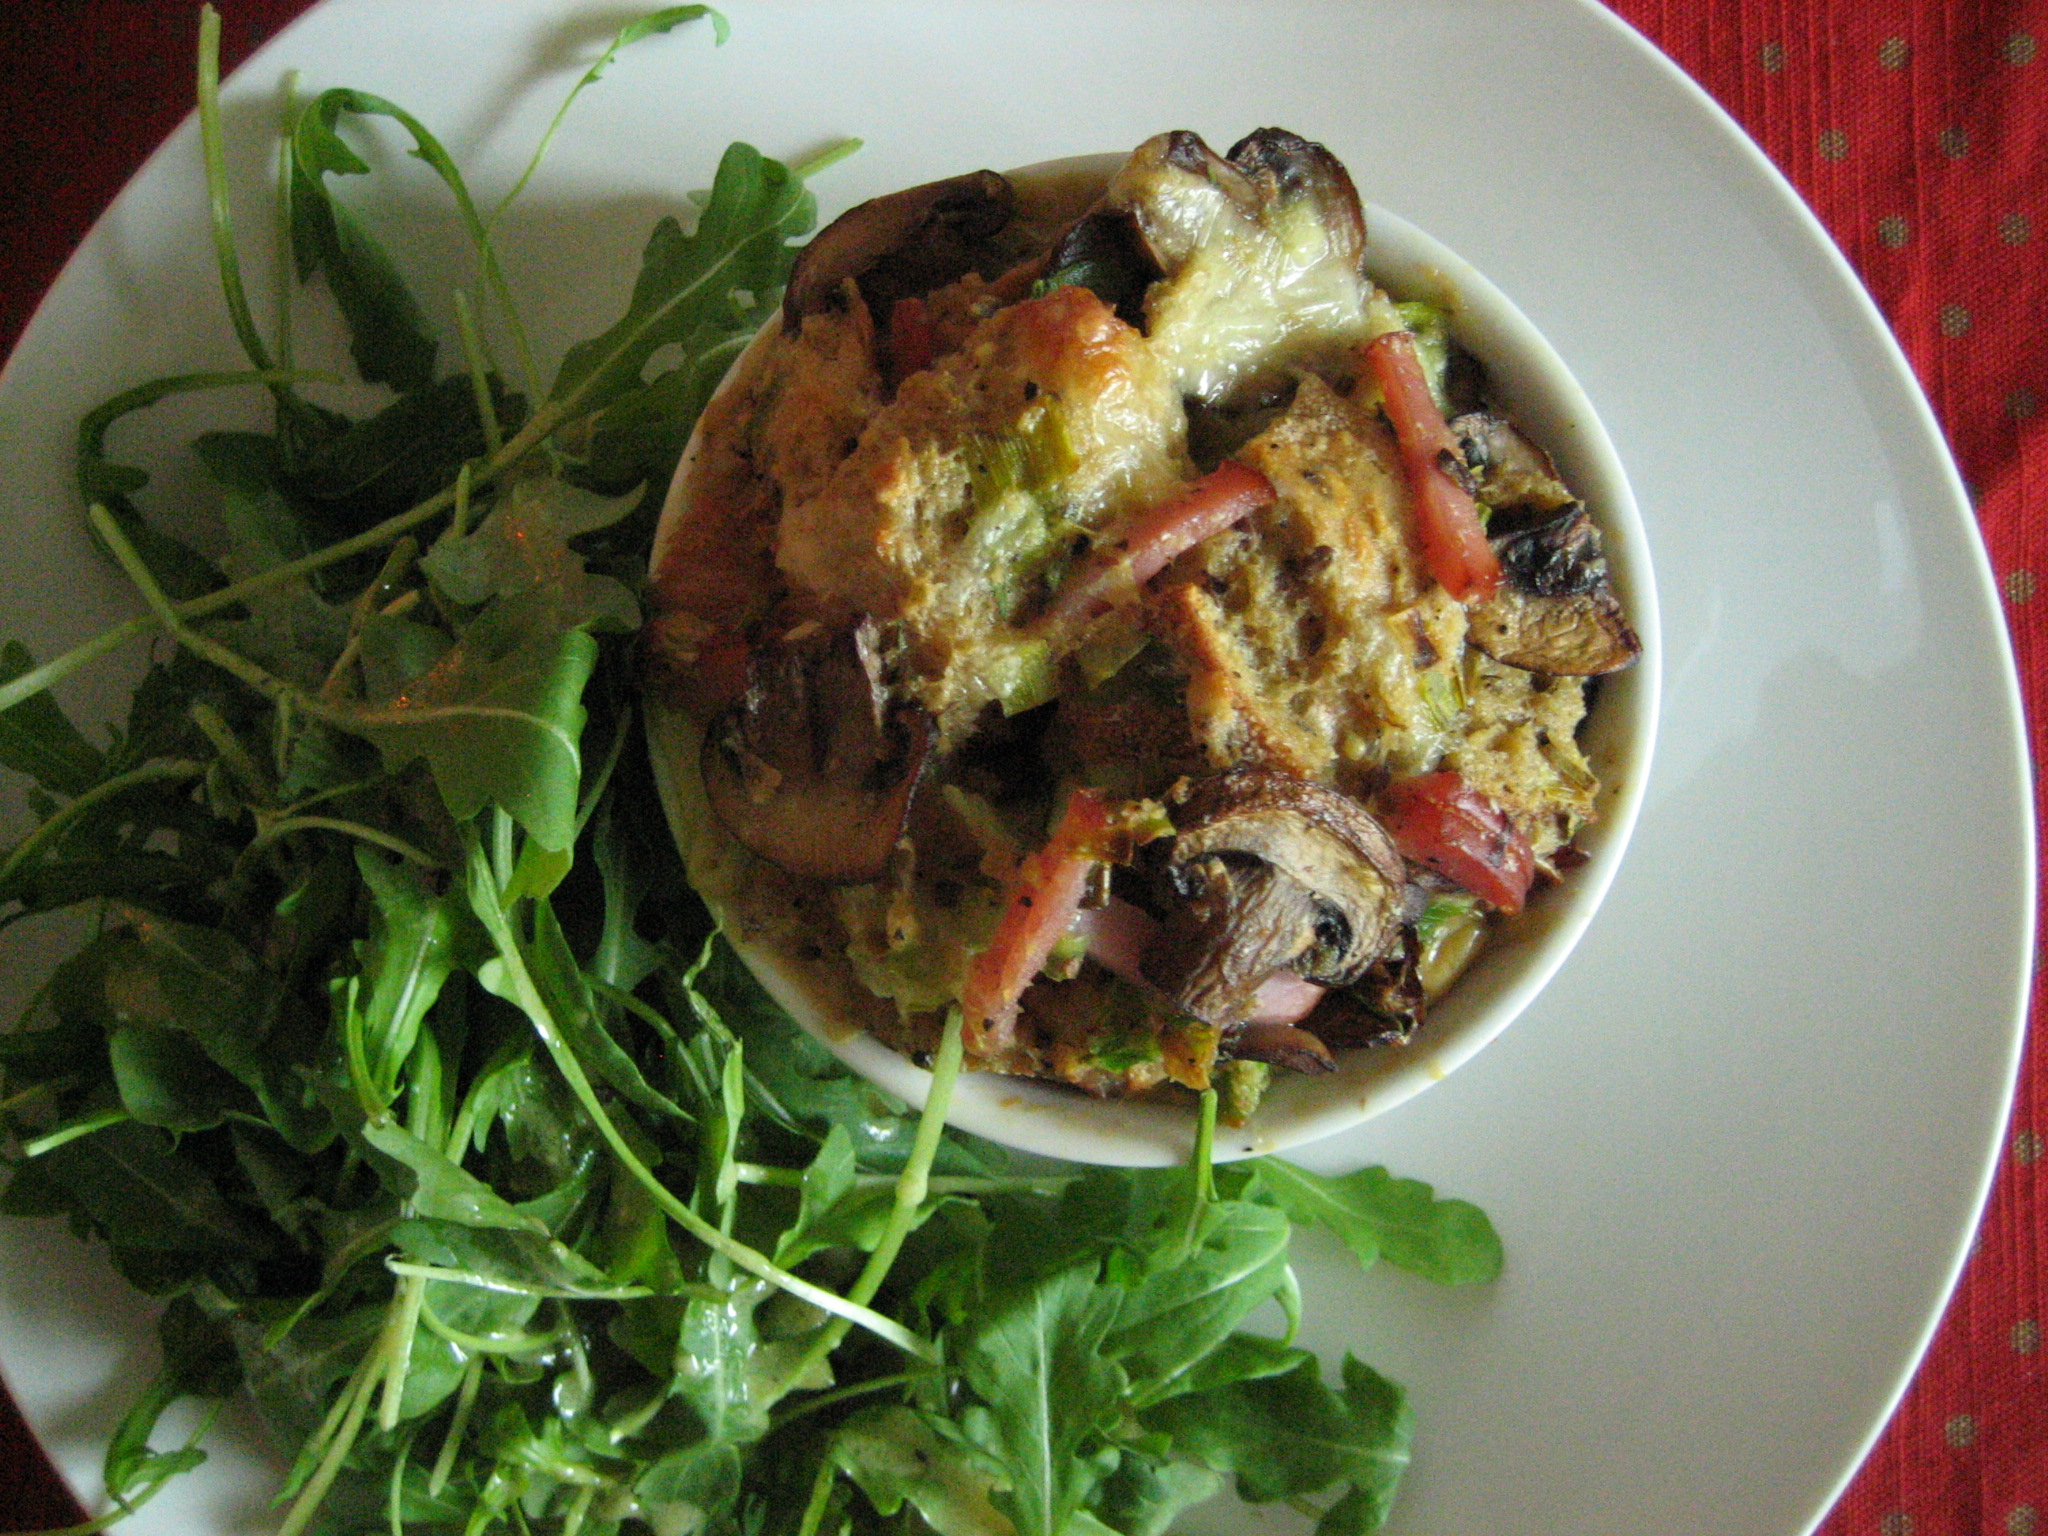 Savory Bread Pudding With Bacon And Greens Recipes — Dishmaps